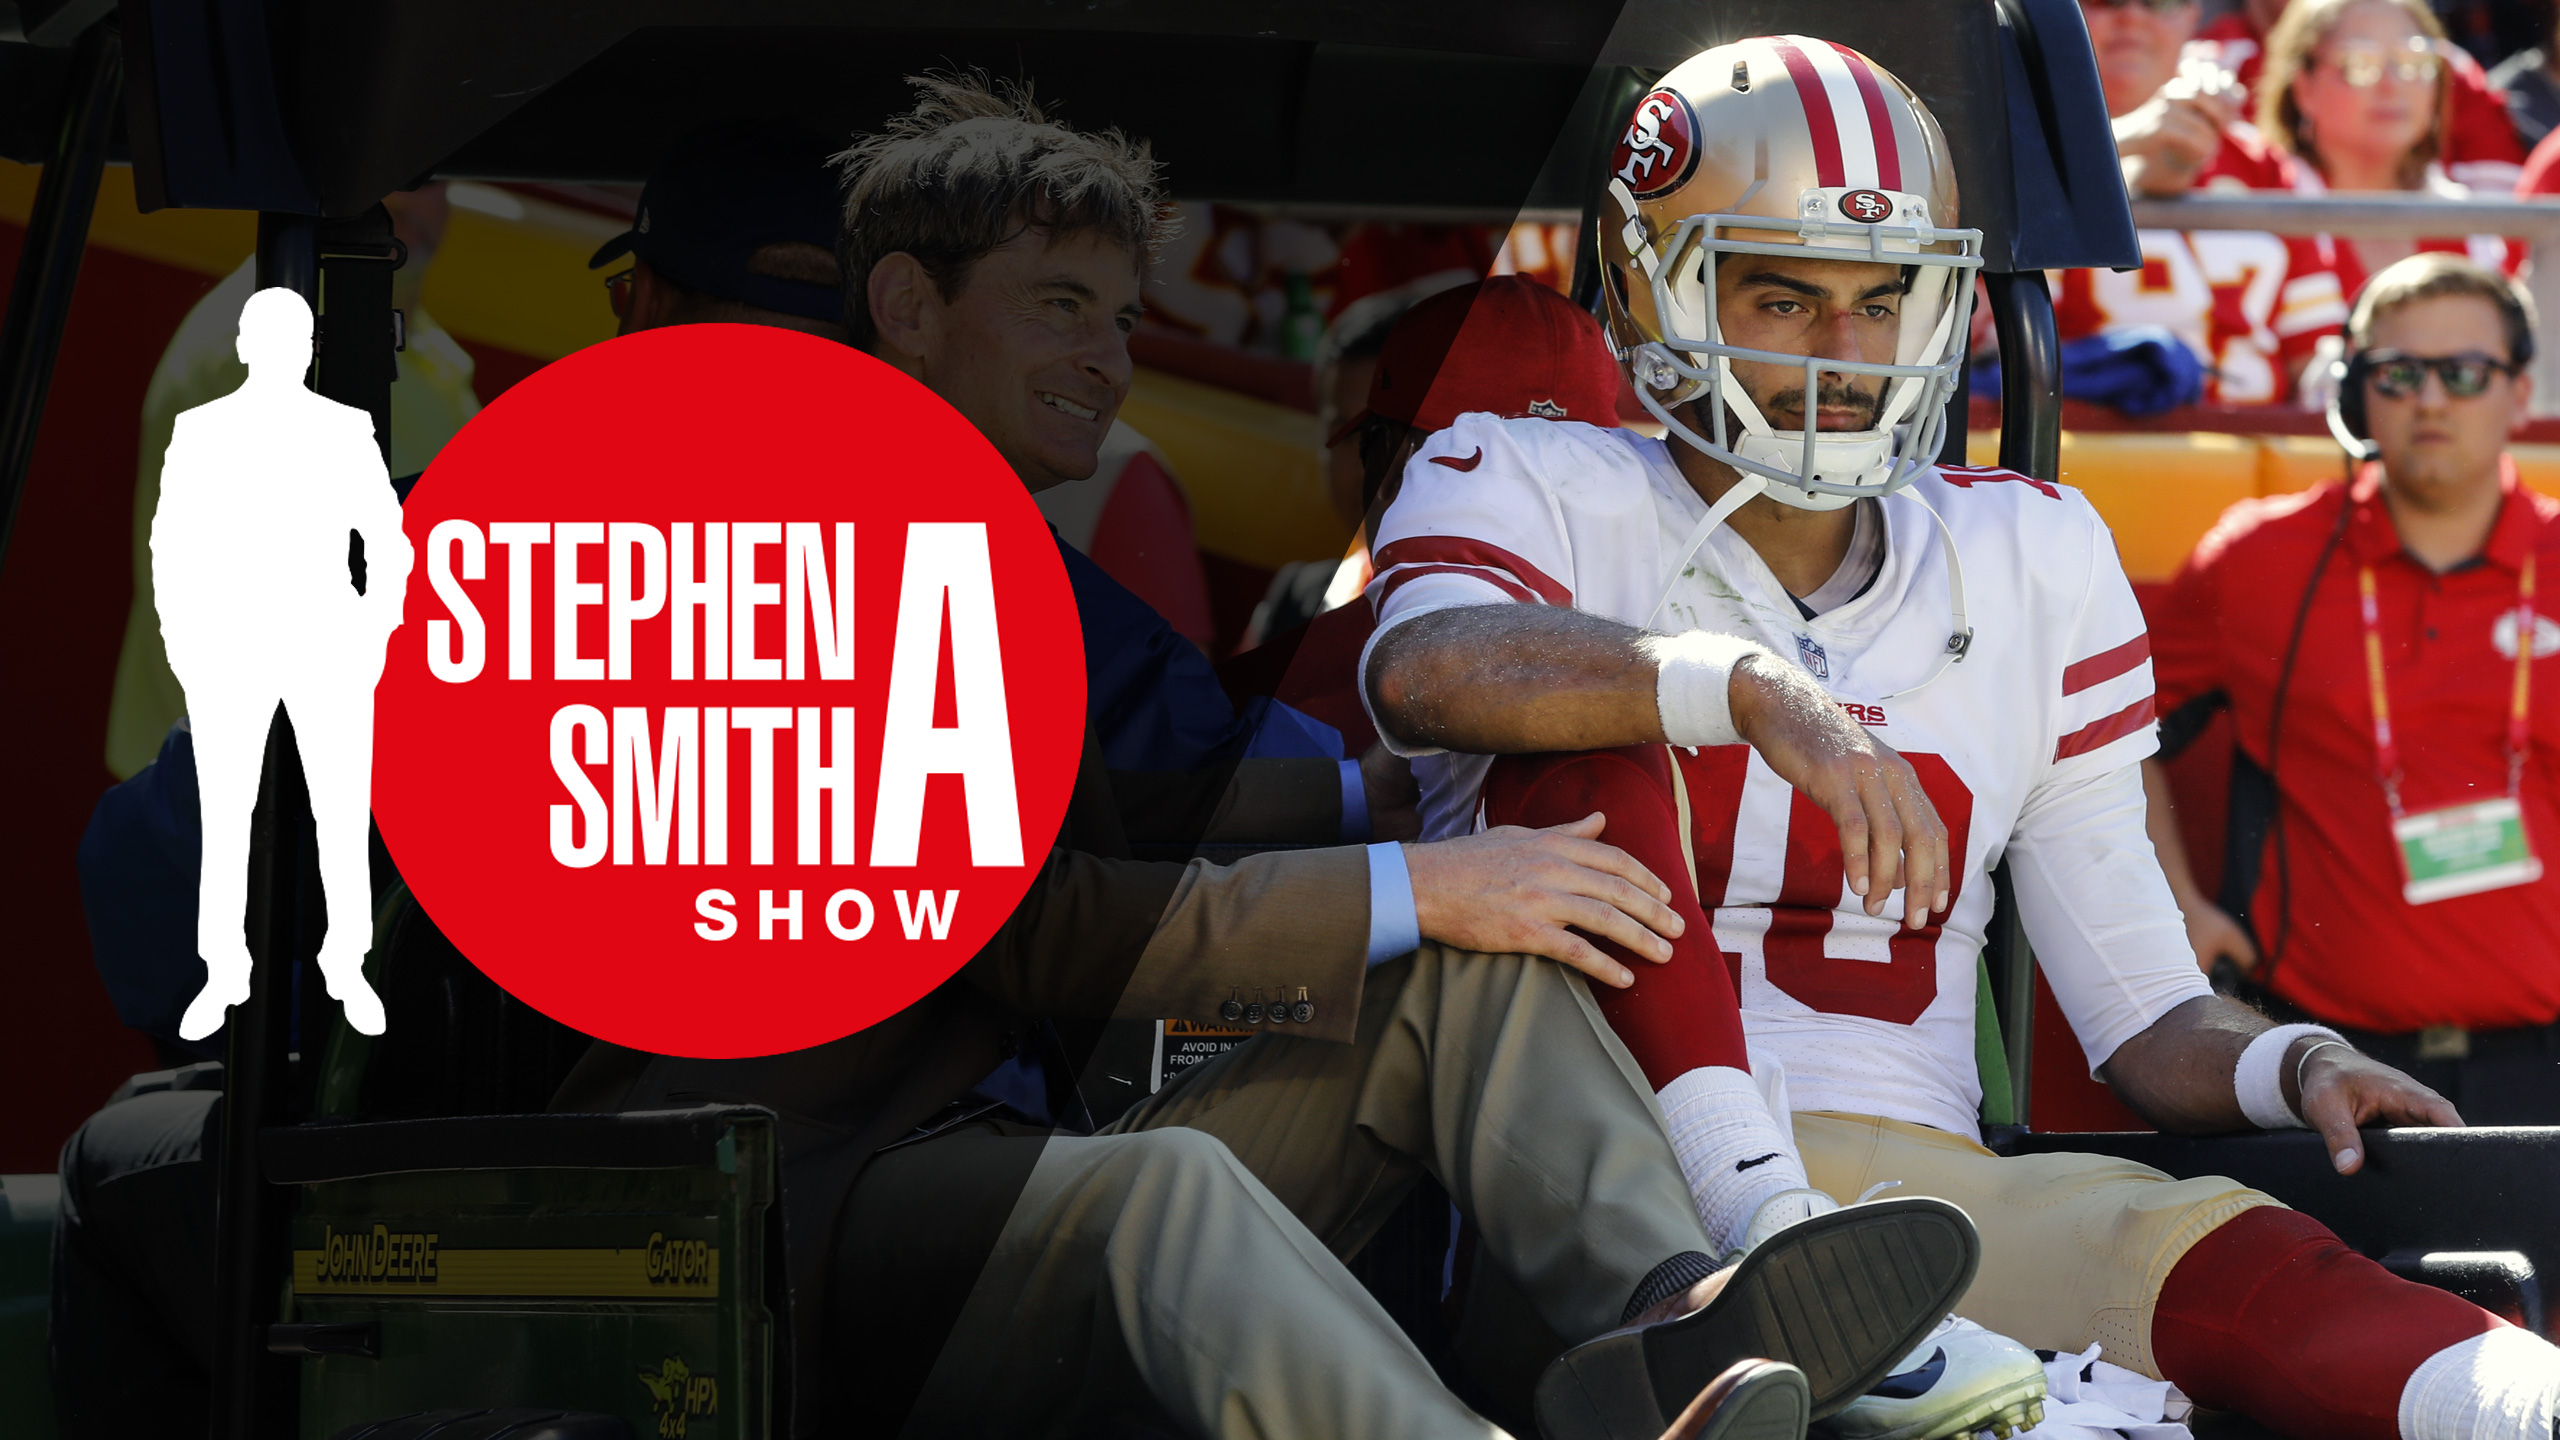 Mon, 9/24 - The Stephen A. Smith Show